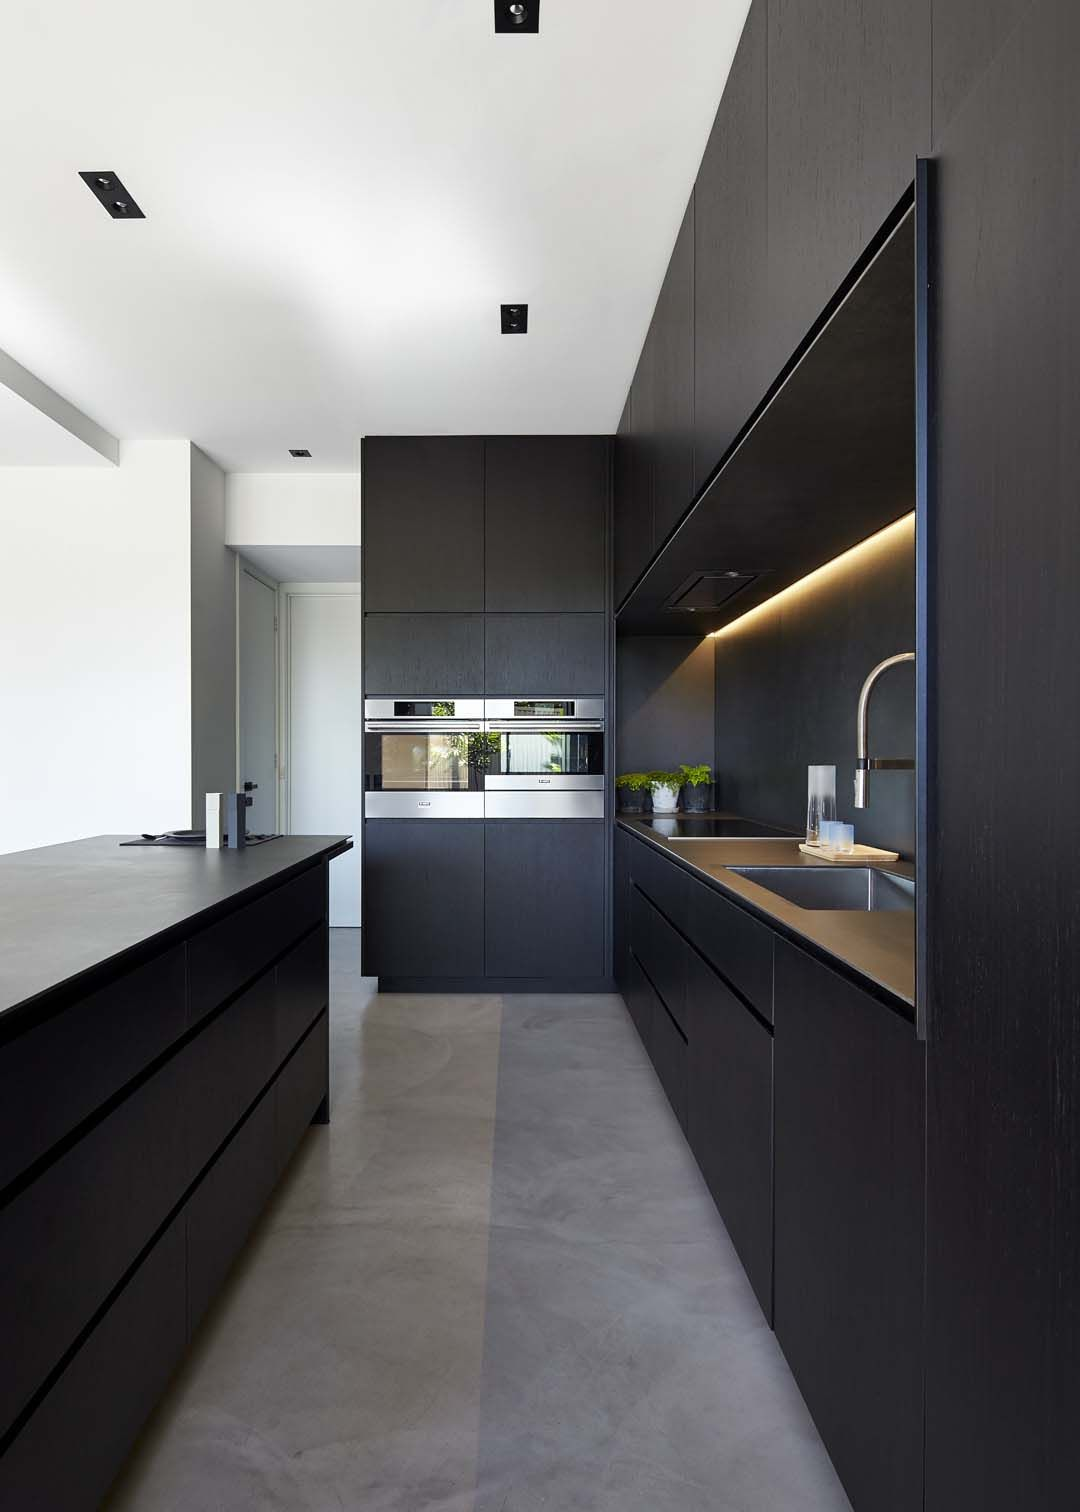 43 dramatic black kitchens that make a bold statement kitchen rh pinterest com